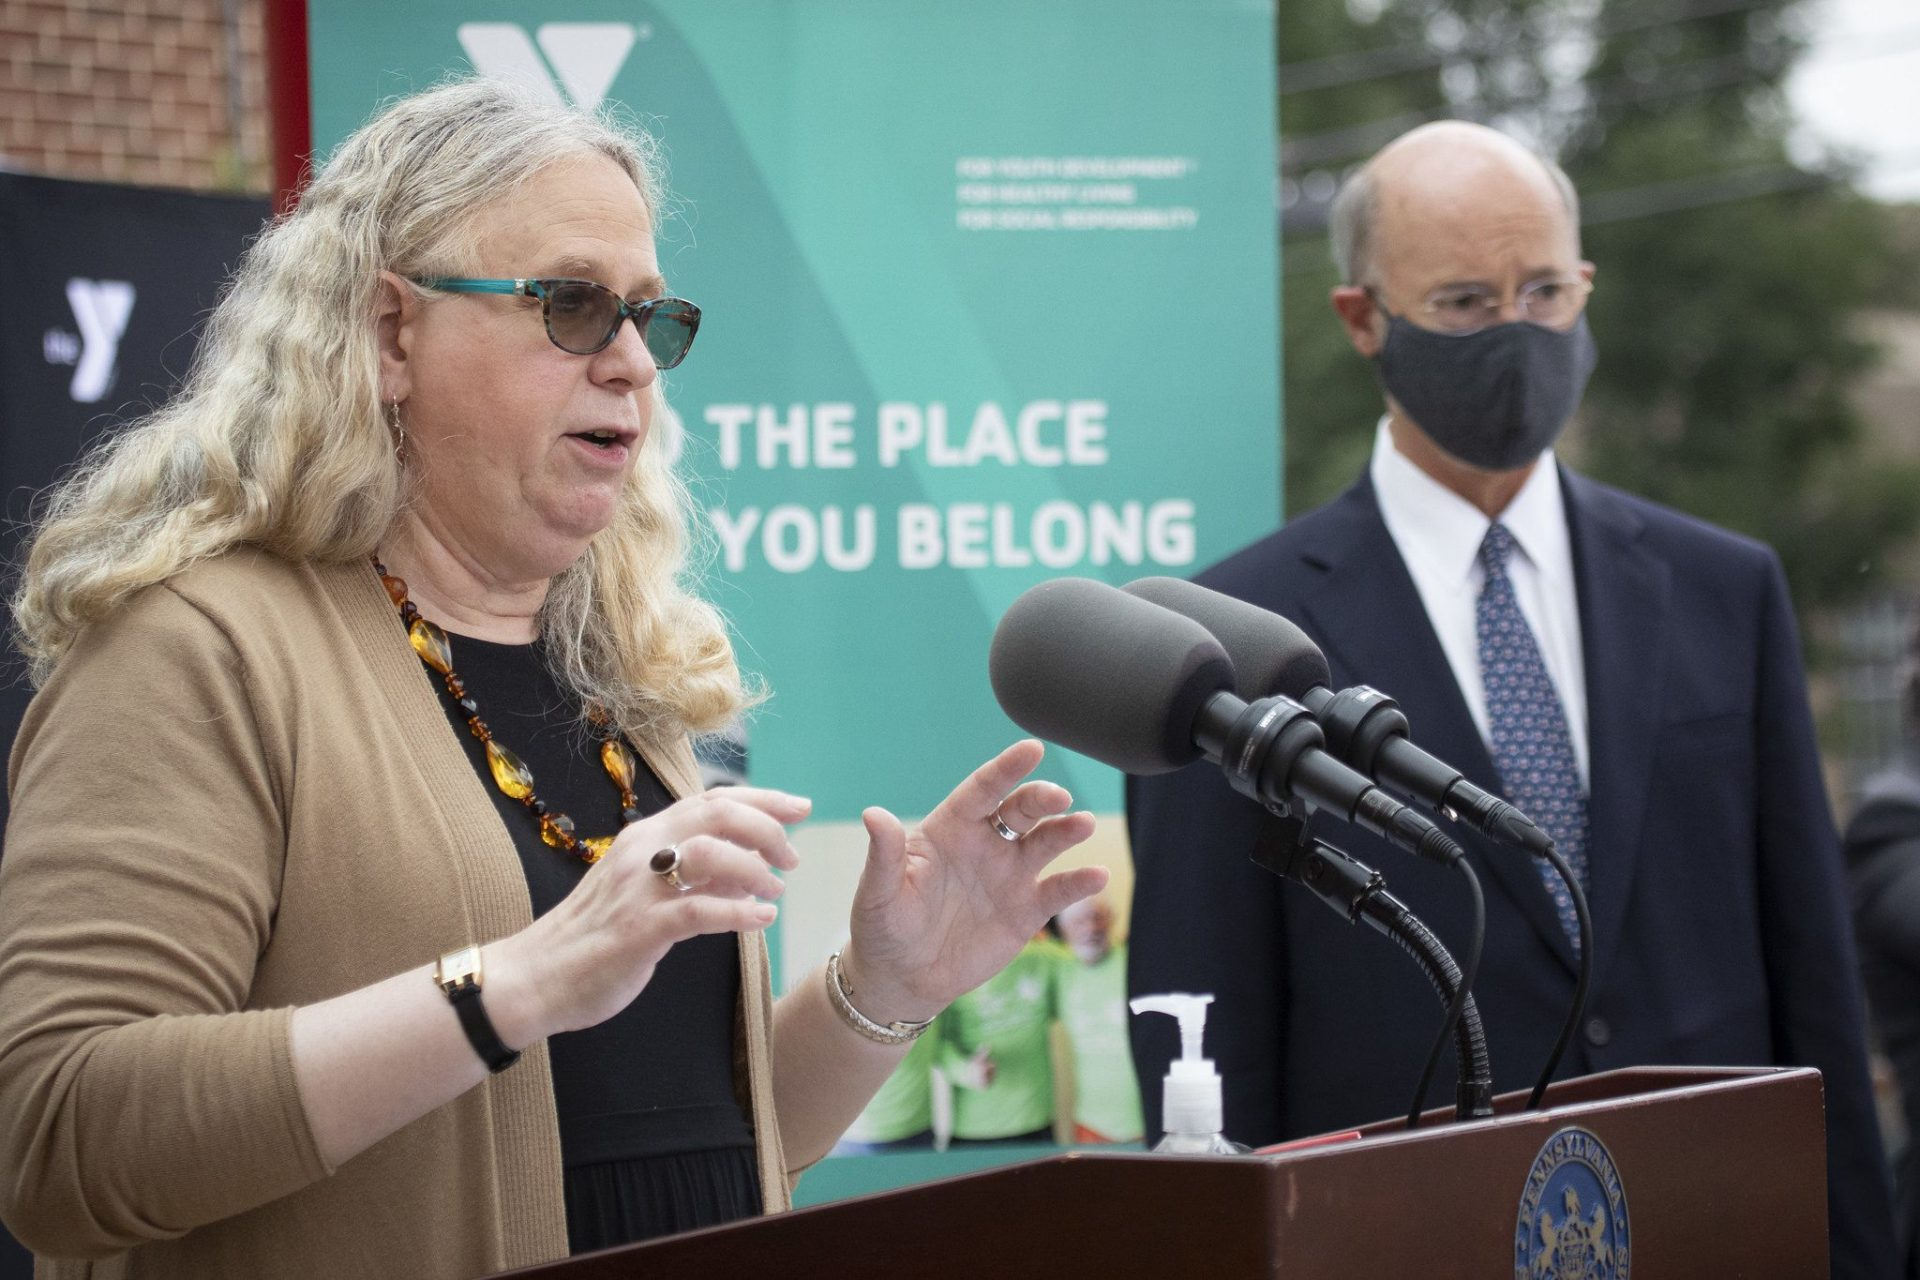 Early on in the pandemic, Pennsylvania Health Secretary Rachel Levine (shown here in York County with Gov. Tom Wolf) cited a decades-old law as a reason for withholding the number of COVID-19 tests the state was conducting and the number of cases in nursing homes. She later reversed course.